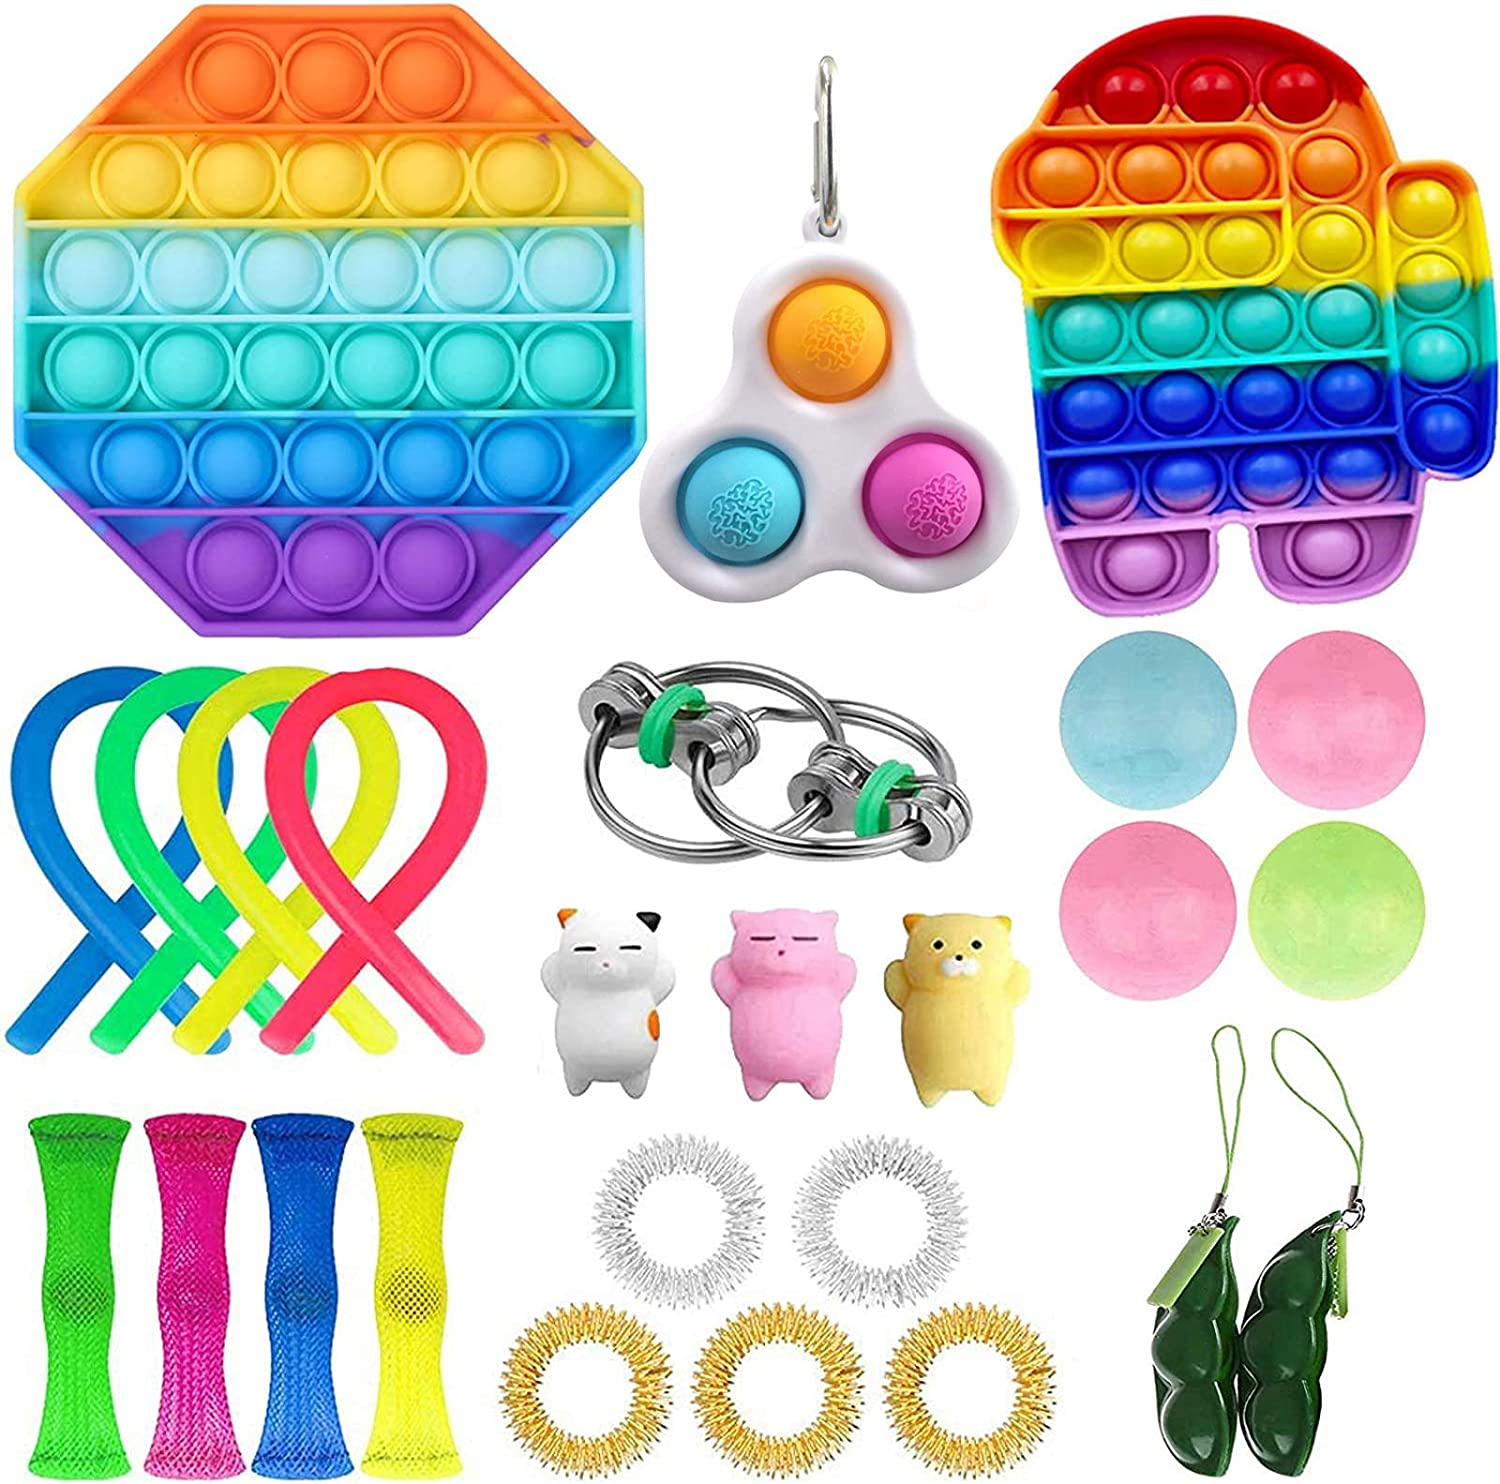 LWXQWDS 30 Pc Fidget Toys Pack, Fidget Toy Set Sensory Toy Pack Cheap for Kids Adults Simple Dimple in It, Stress Relief Toys for Anxiety (26 Pcs)